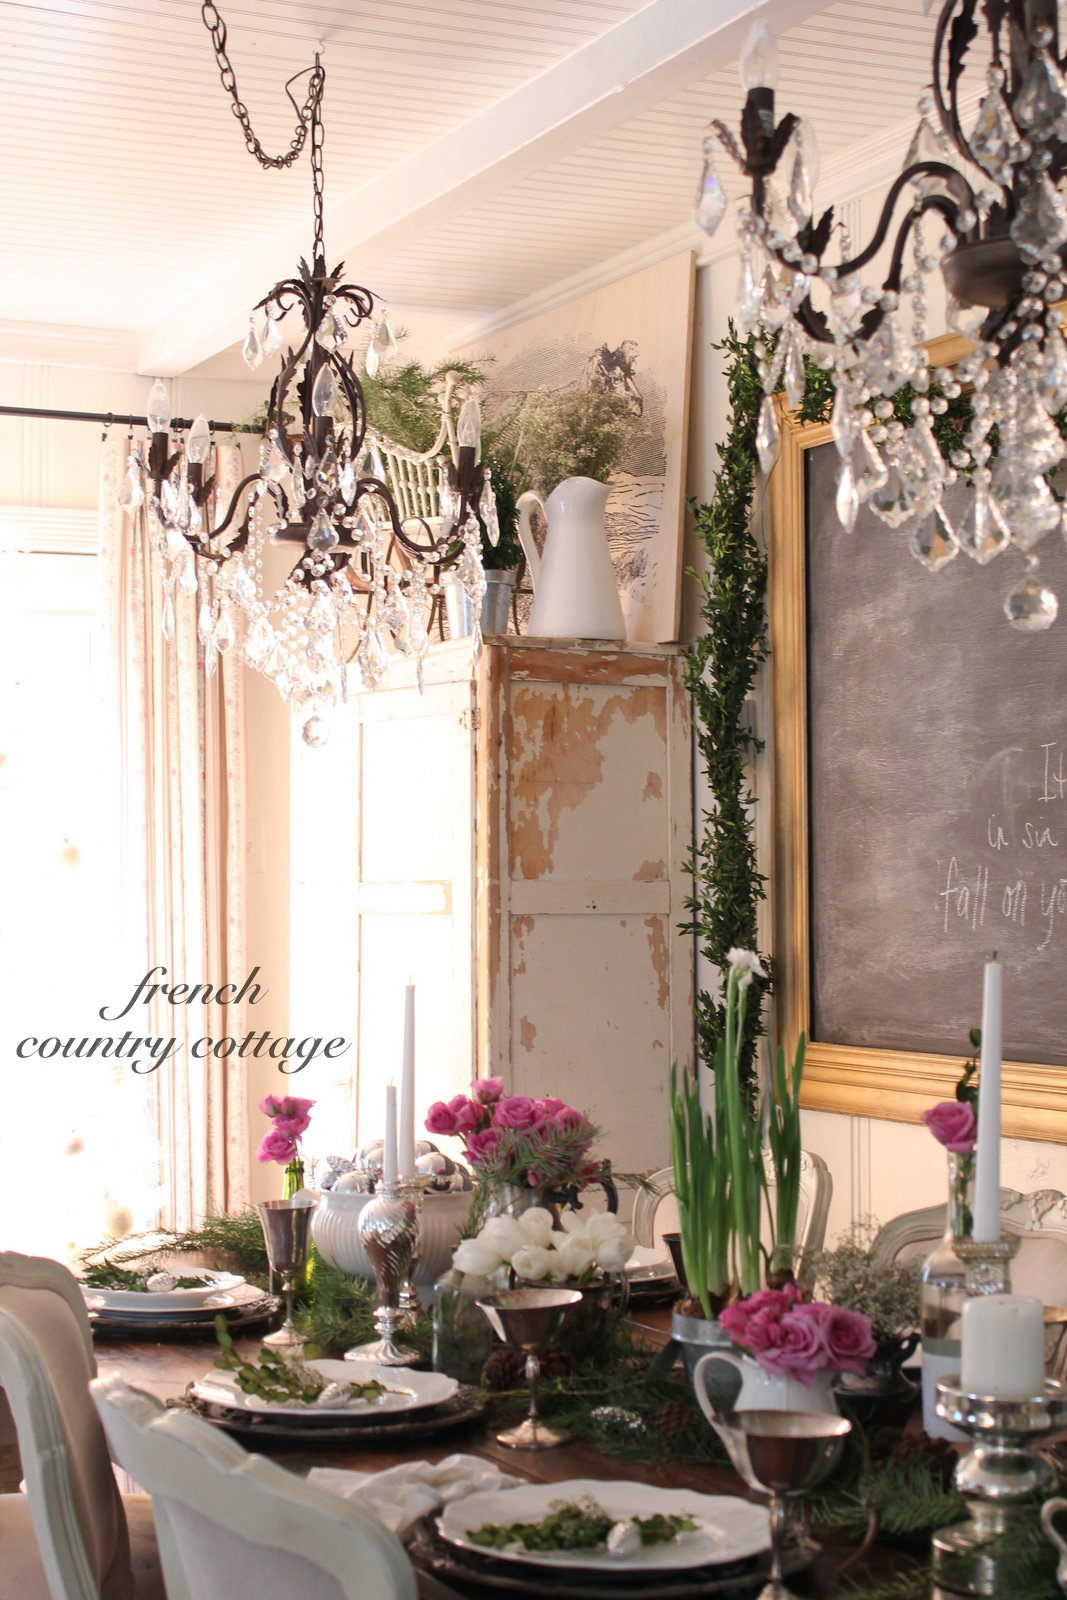 French Country Office Design: Romantic Holiday Dining